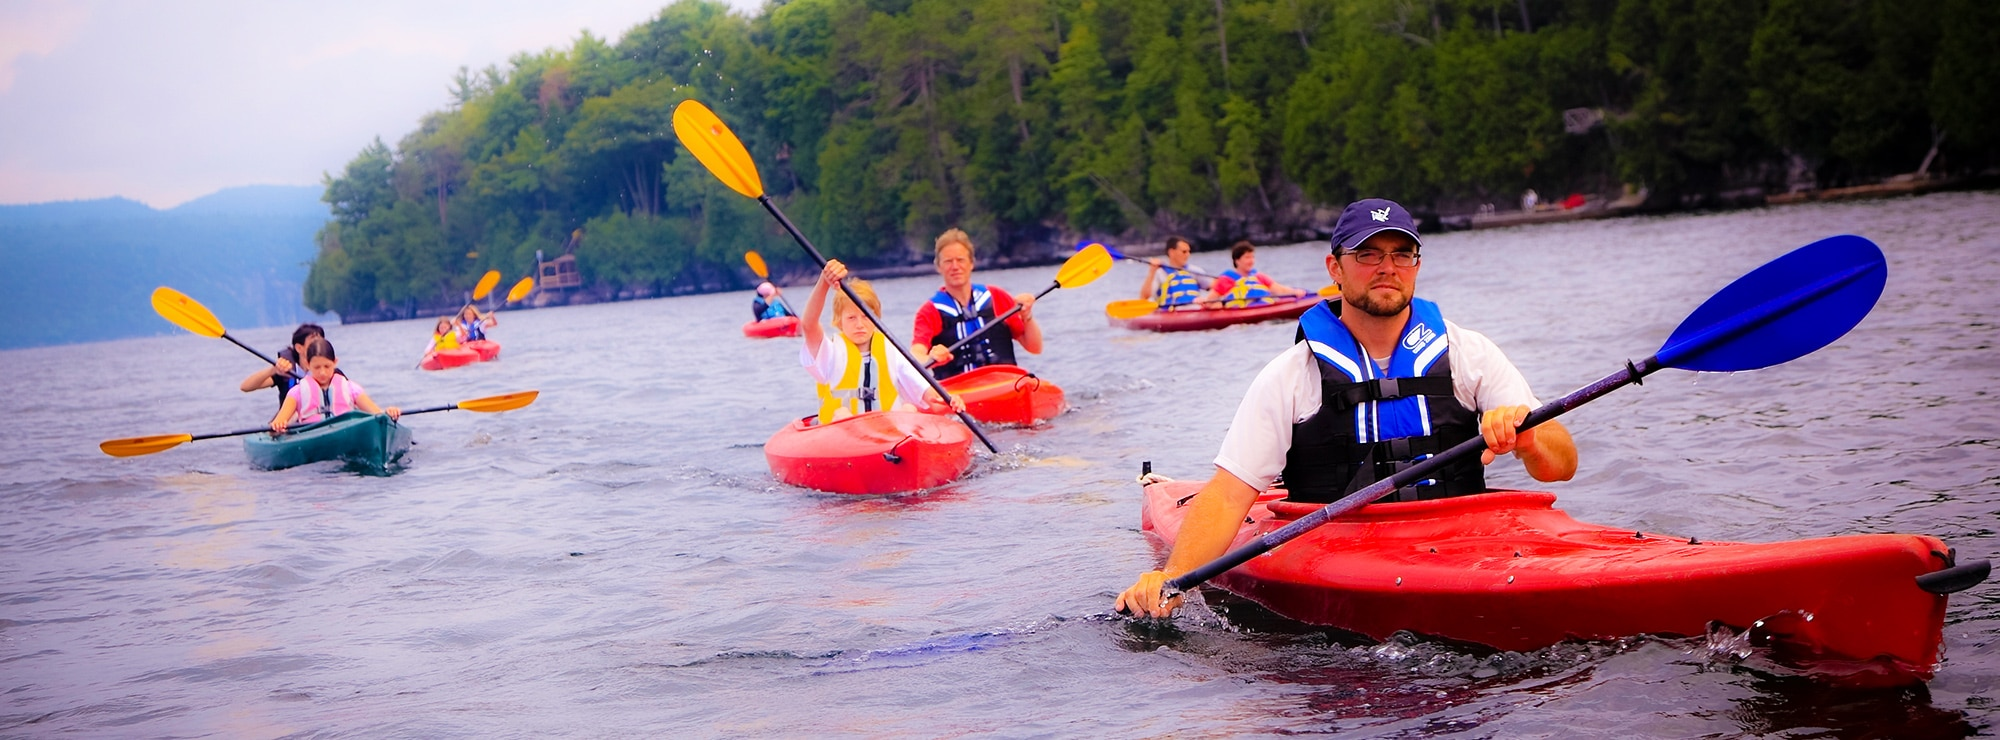 interior-slider-activities-kayaking